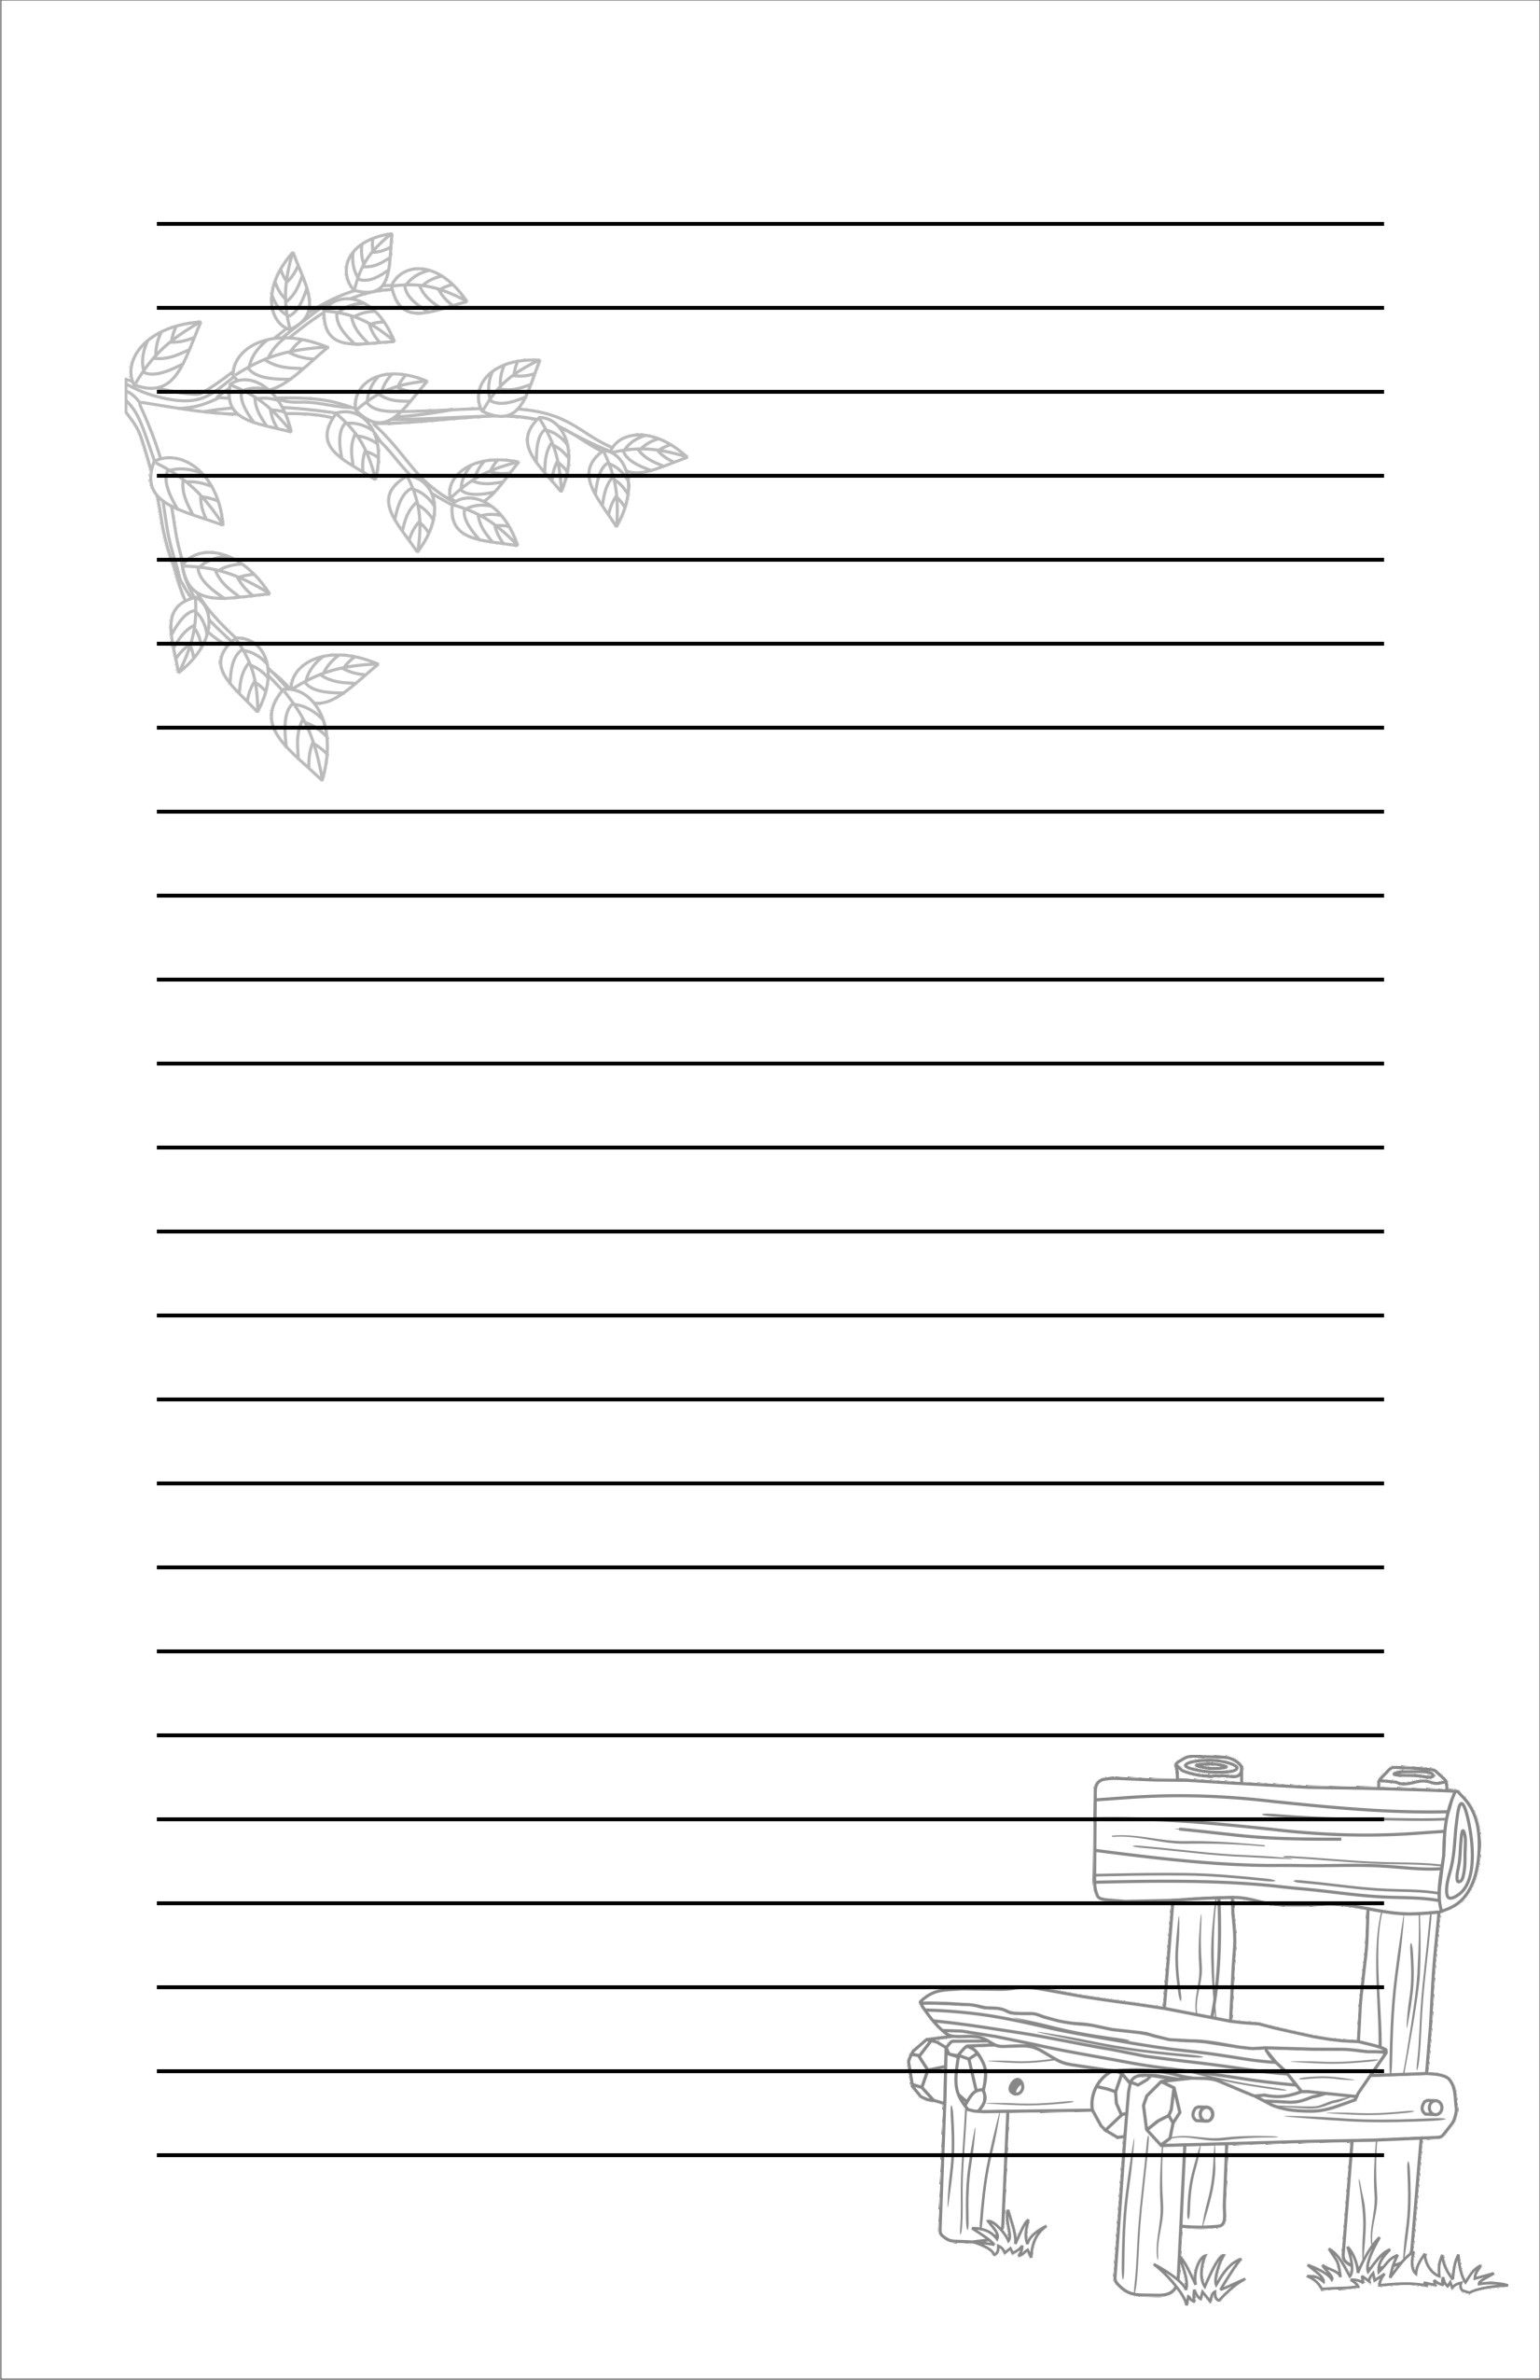 free stationery sample from RicLDP Artworks | Classroom | Pinterest ...